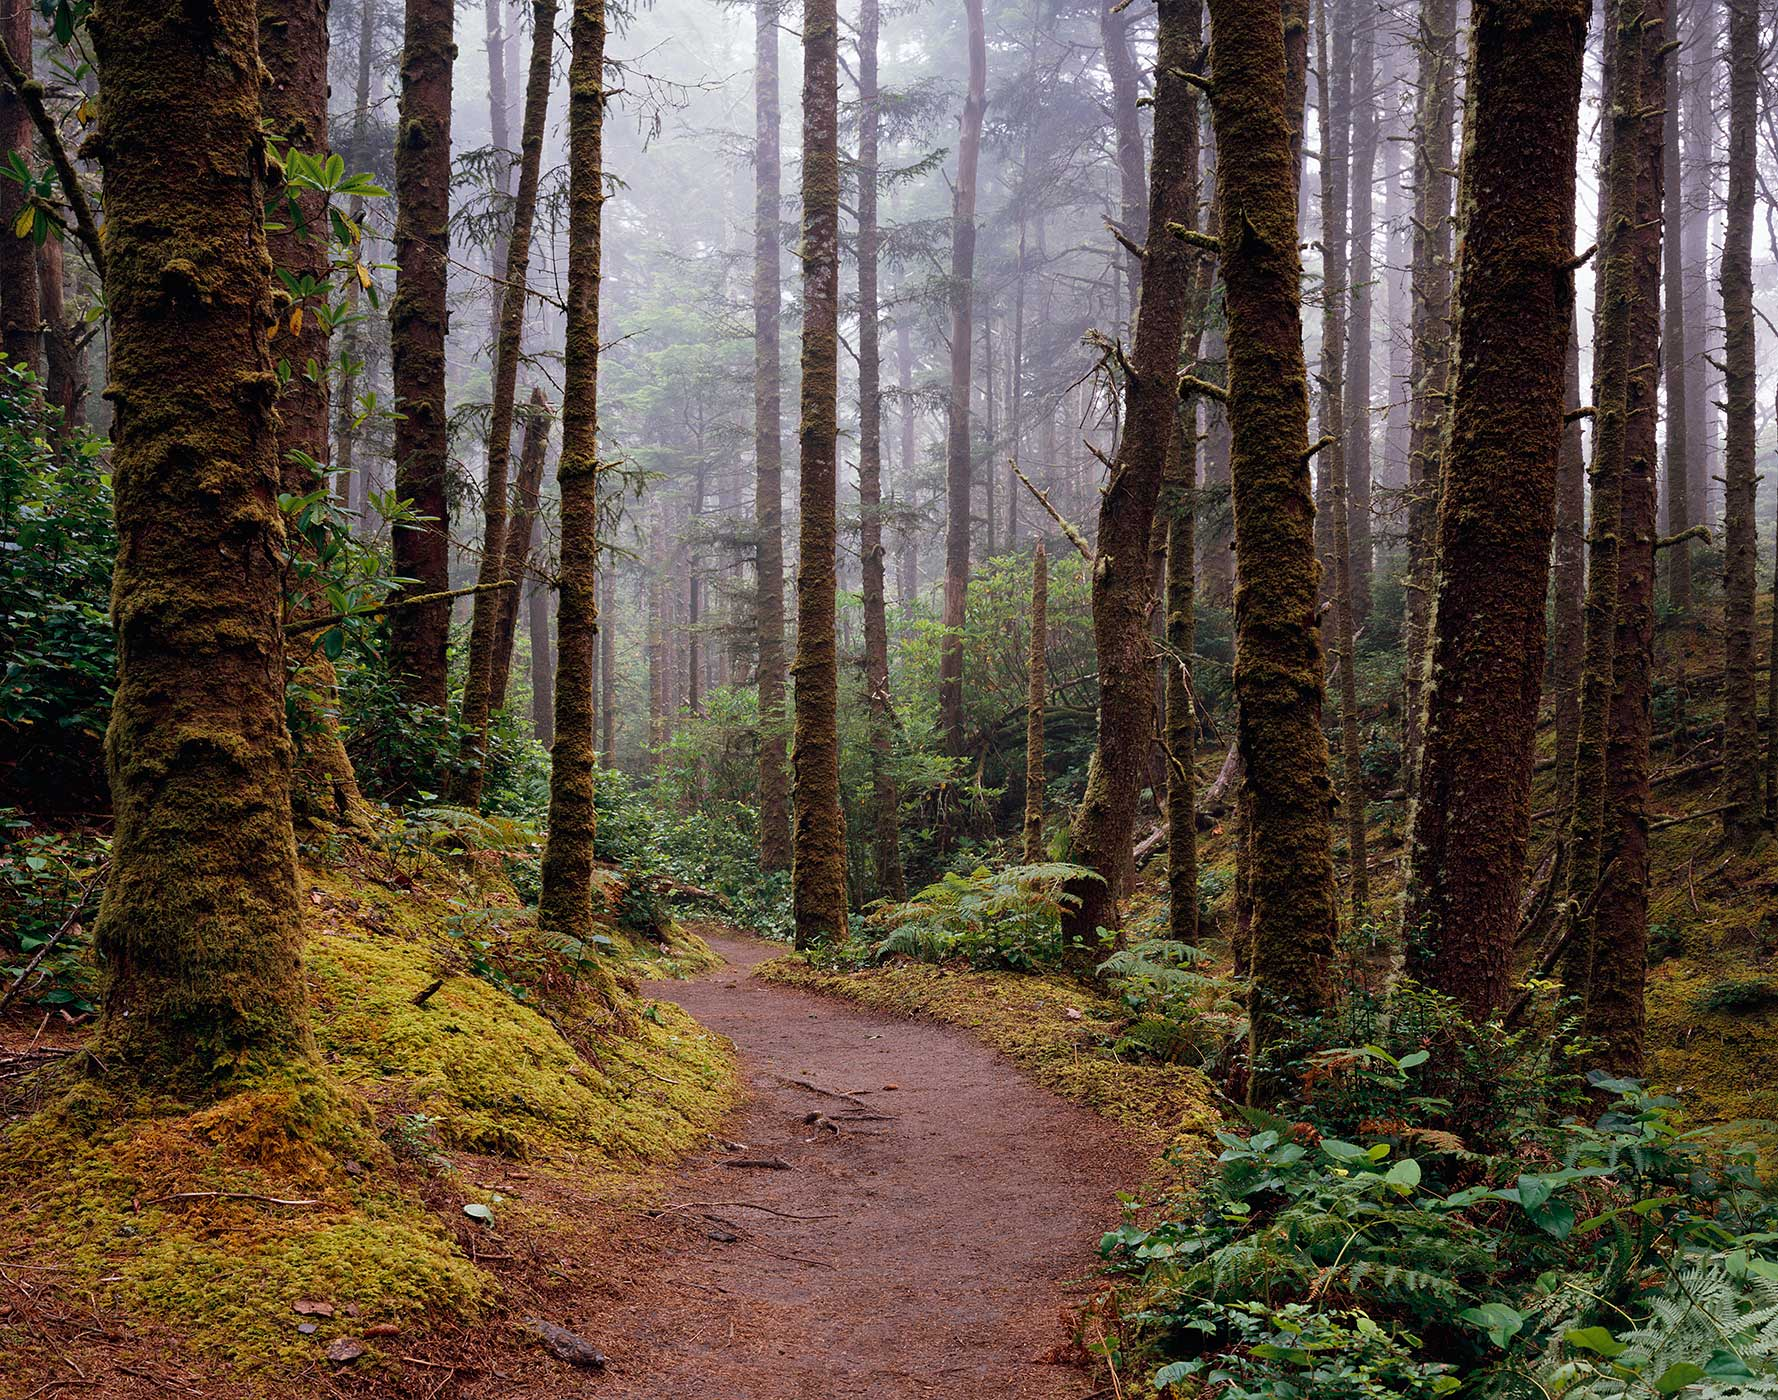 1354 The Hobbit Trail, Siuslaw National Forest, Oregon